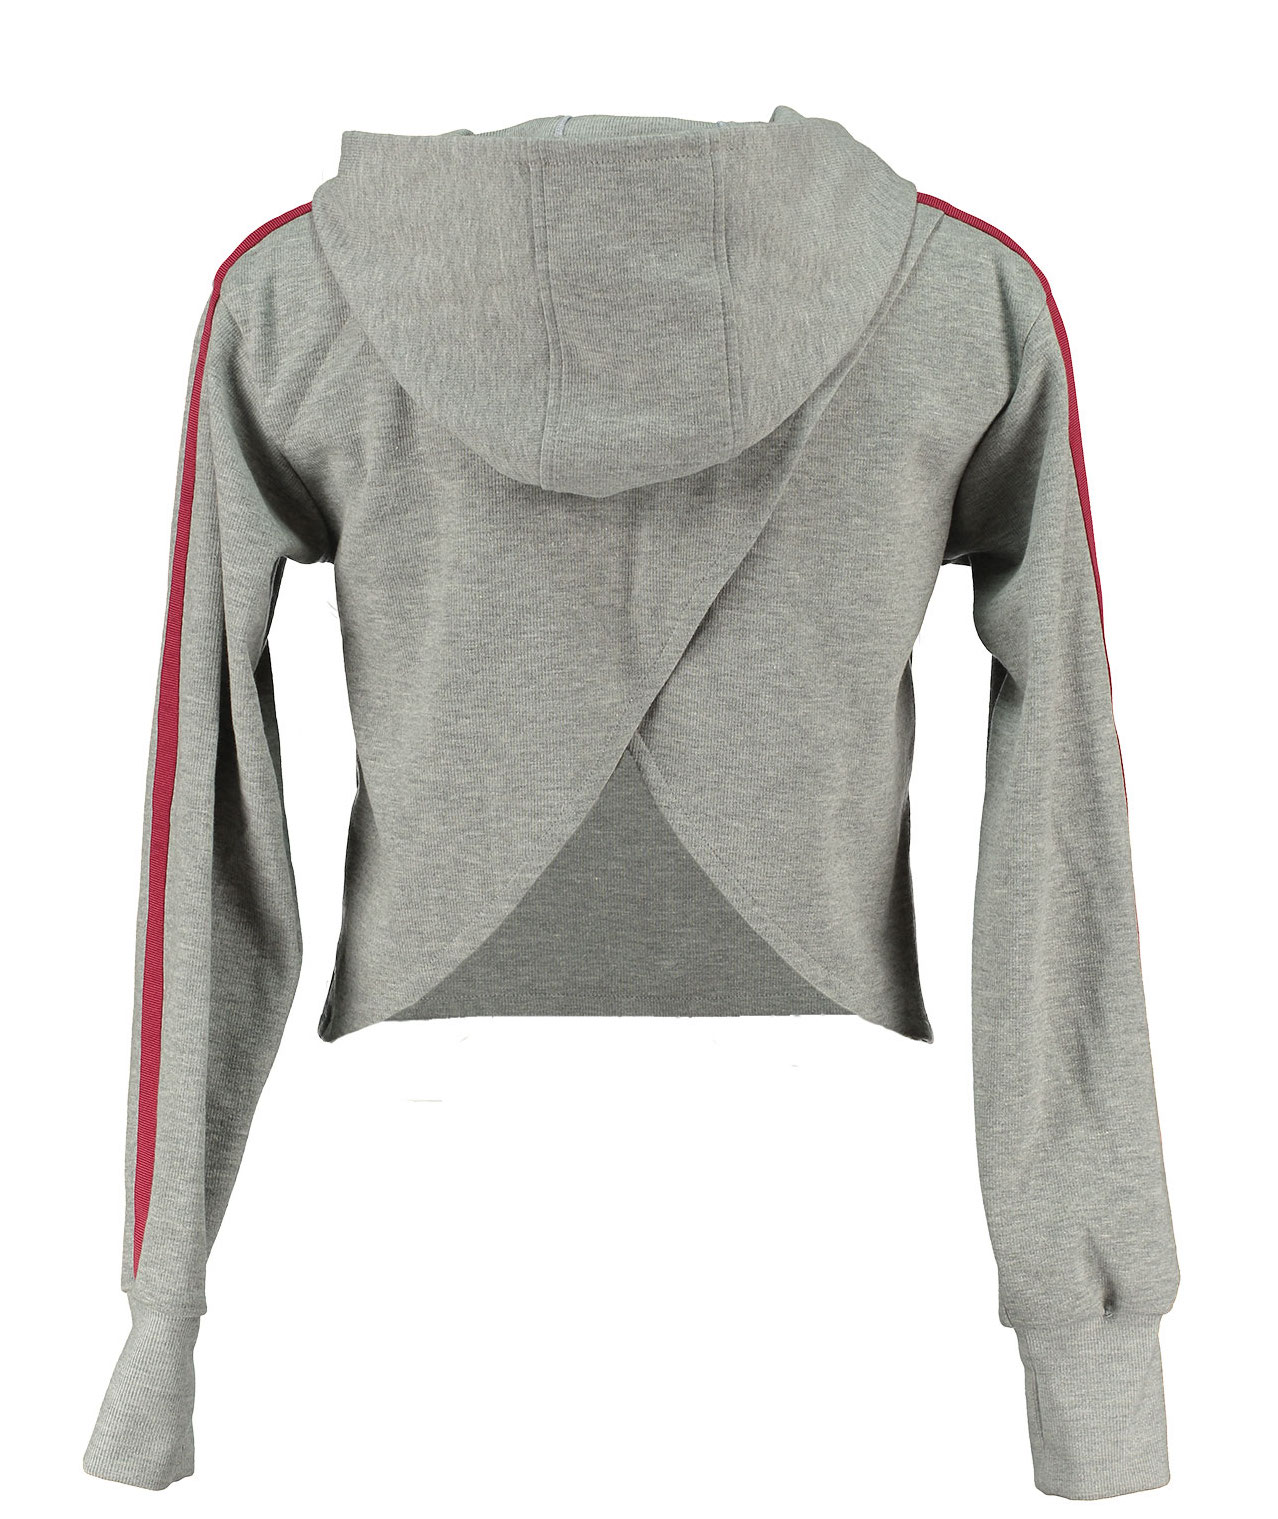 SPORTCOOLTURE MODA DEPORTIVA CHANDAL MUJER ONMYTRAININGSHOES MYSOZOSHOP COELCCION ROPA OMTS ESTILO DEPORTIVO